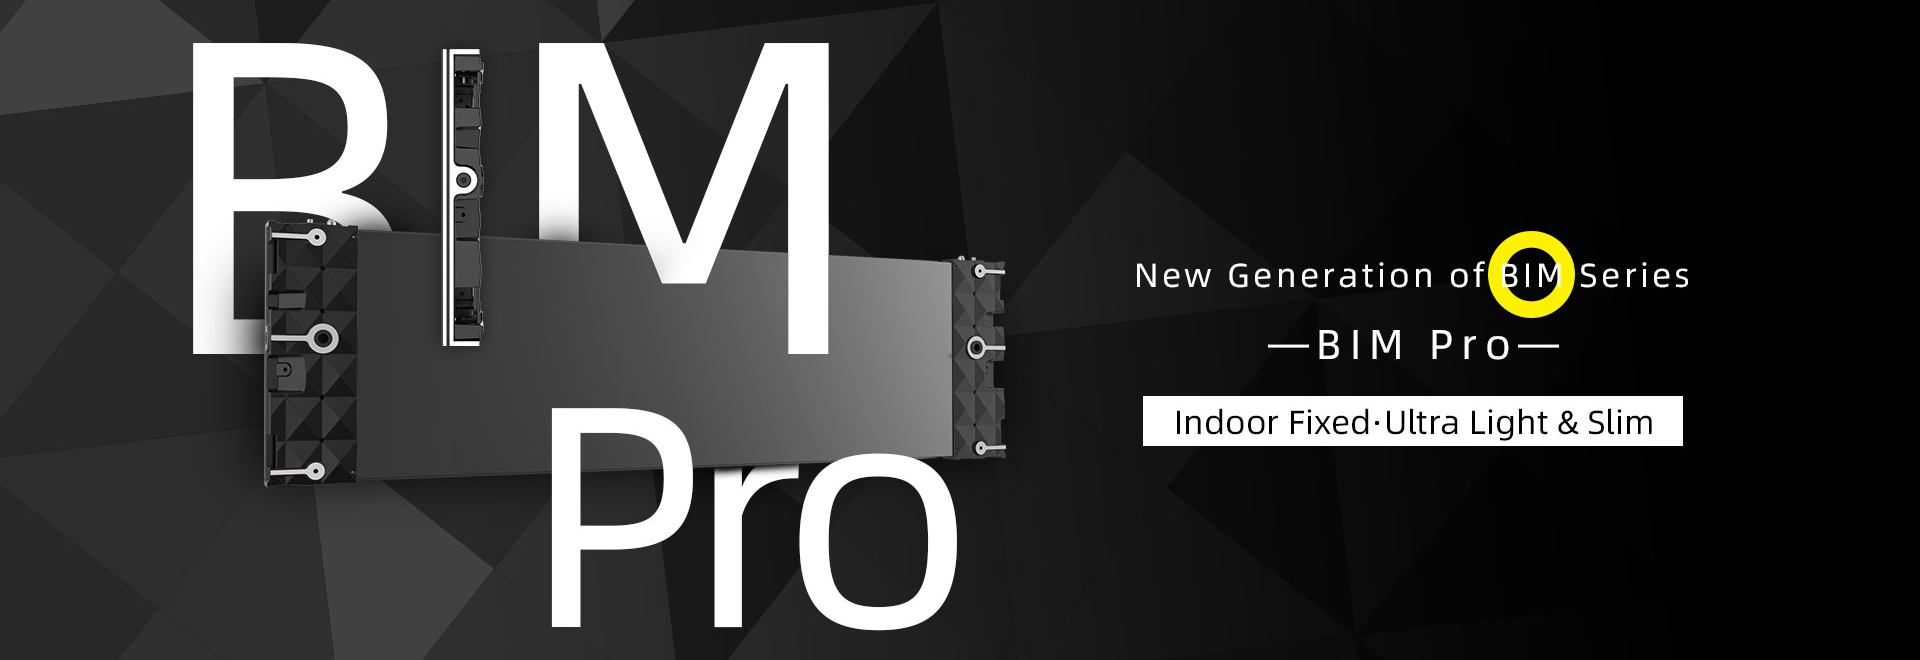 led screen, BIM Pro